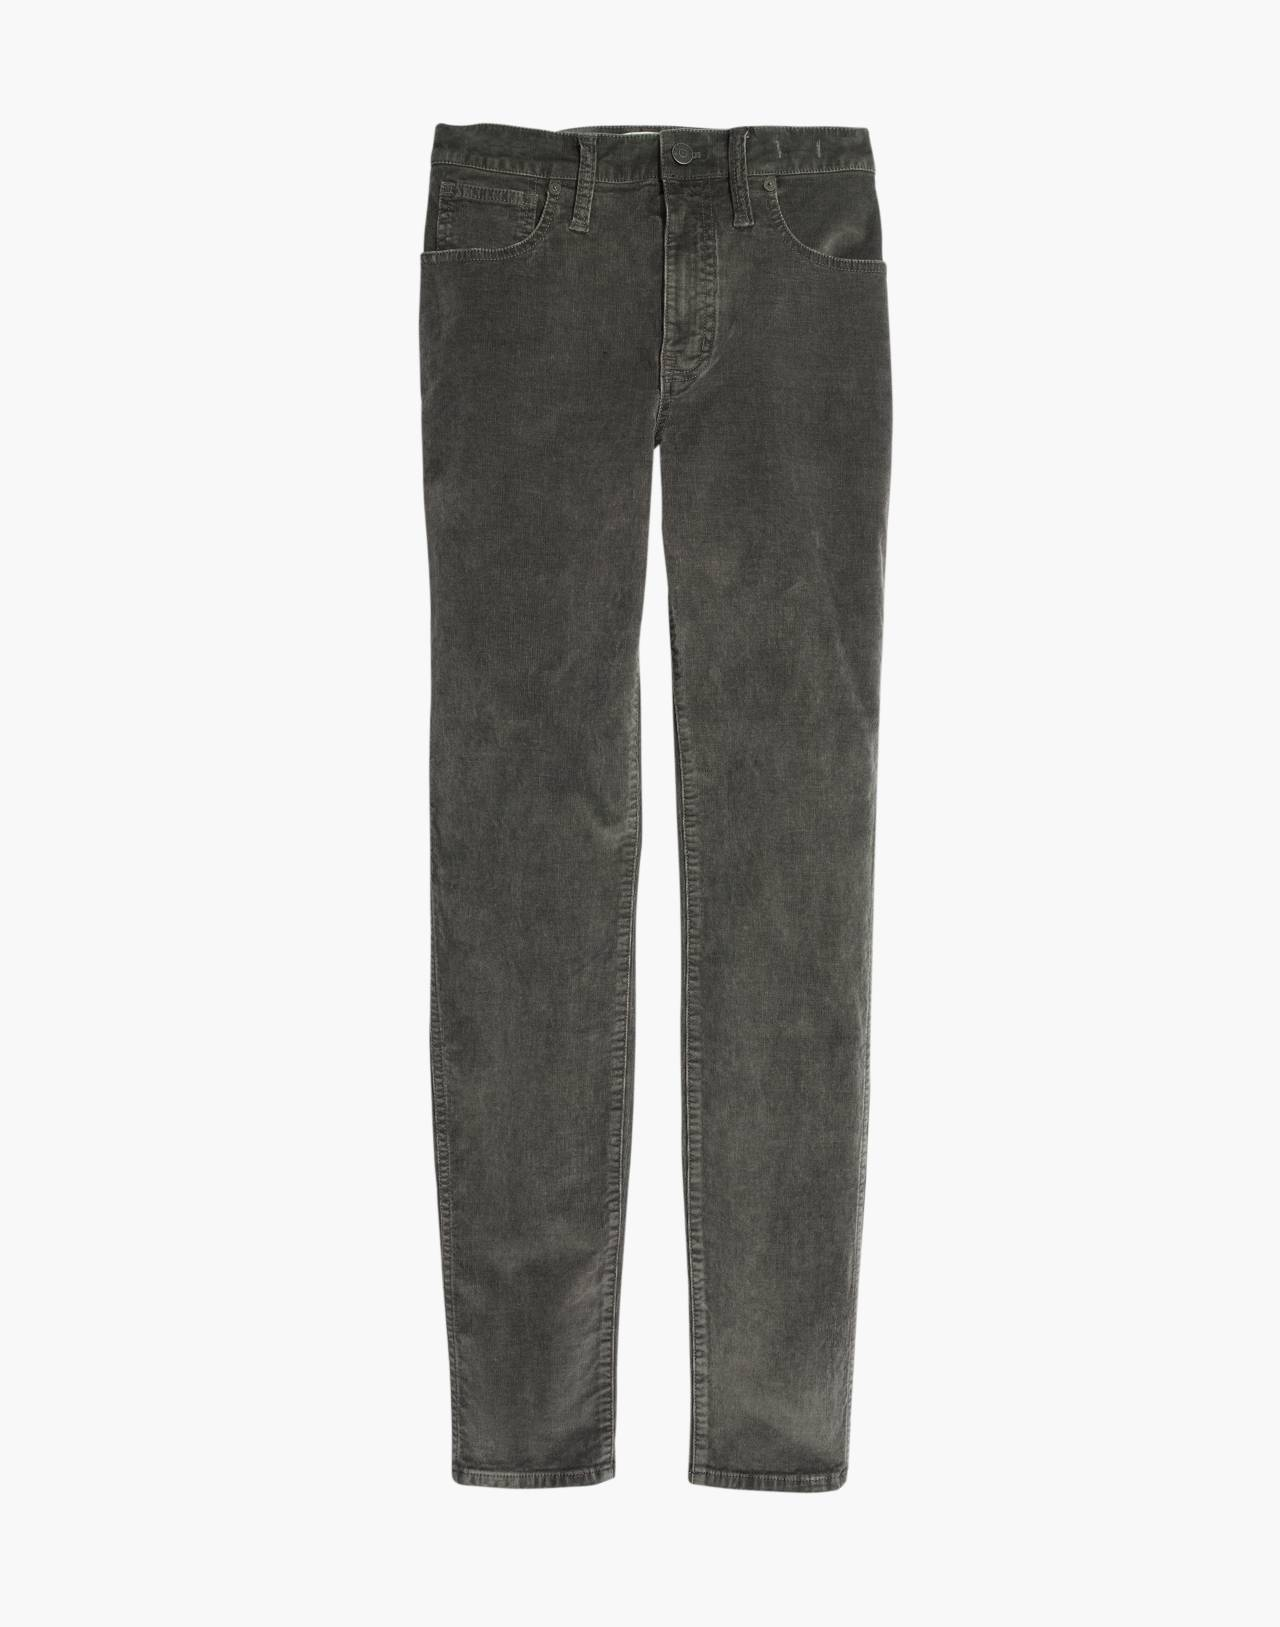 "Tall 10"" High-Rise Skinny Jeans: Corduroy Edition in smoked graphite image 4"